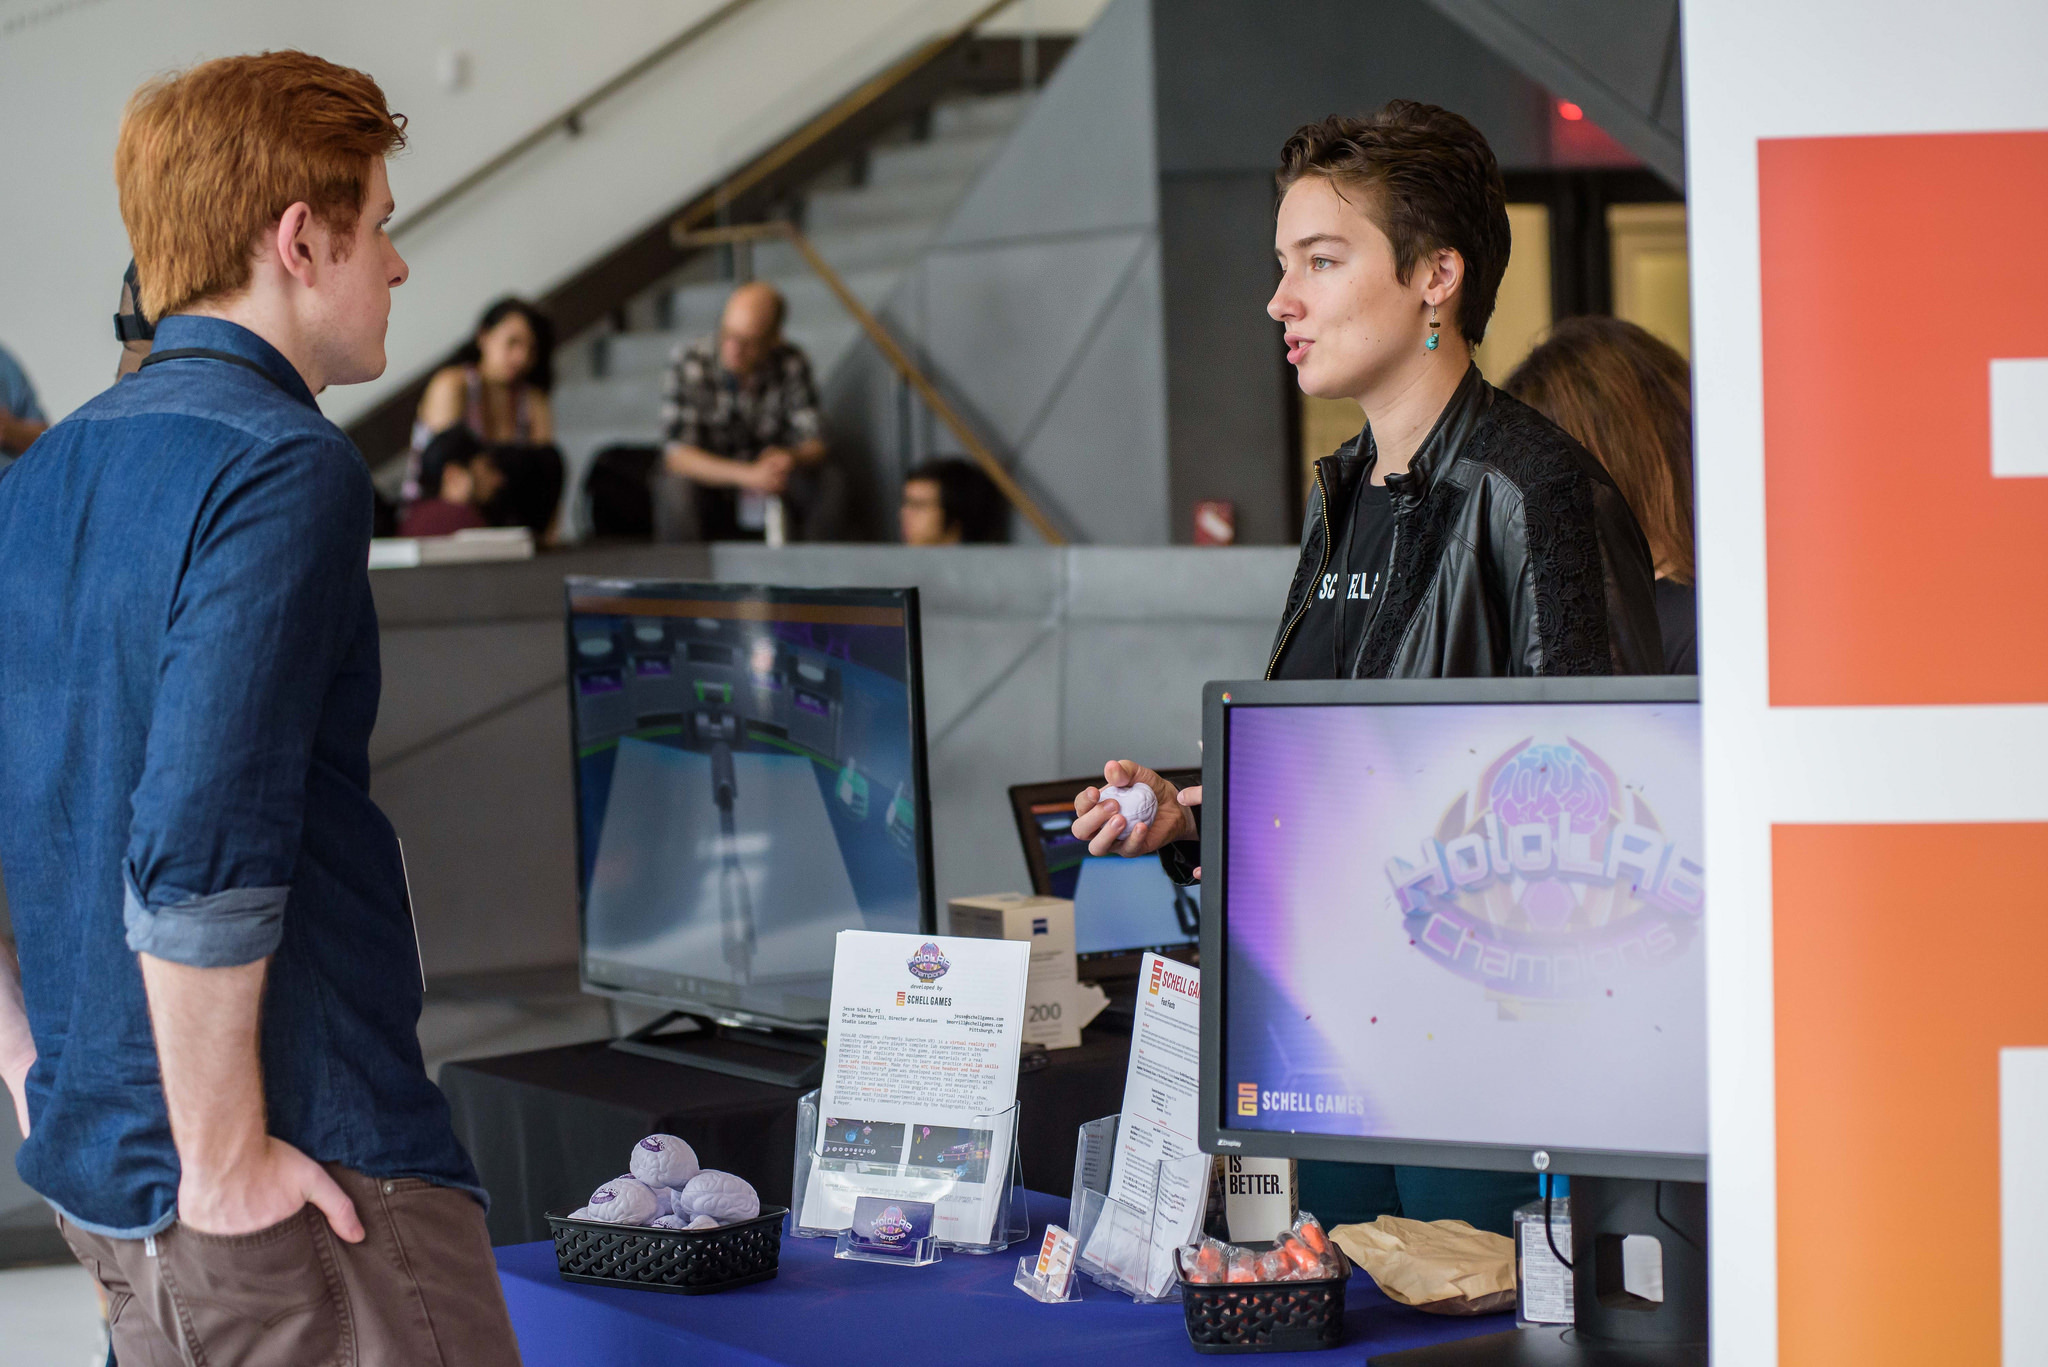 Marlena talks to G4 C attendee about Holo LAB